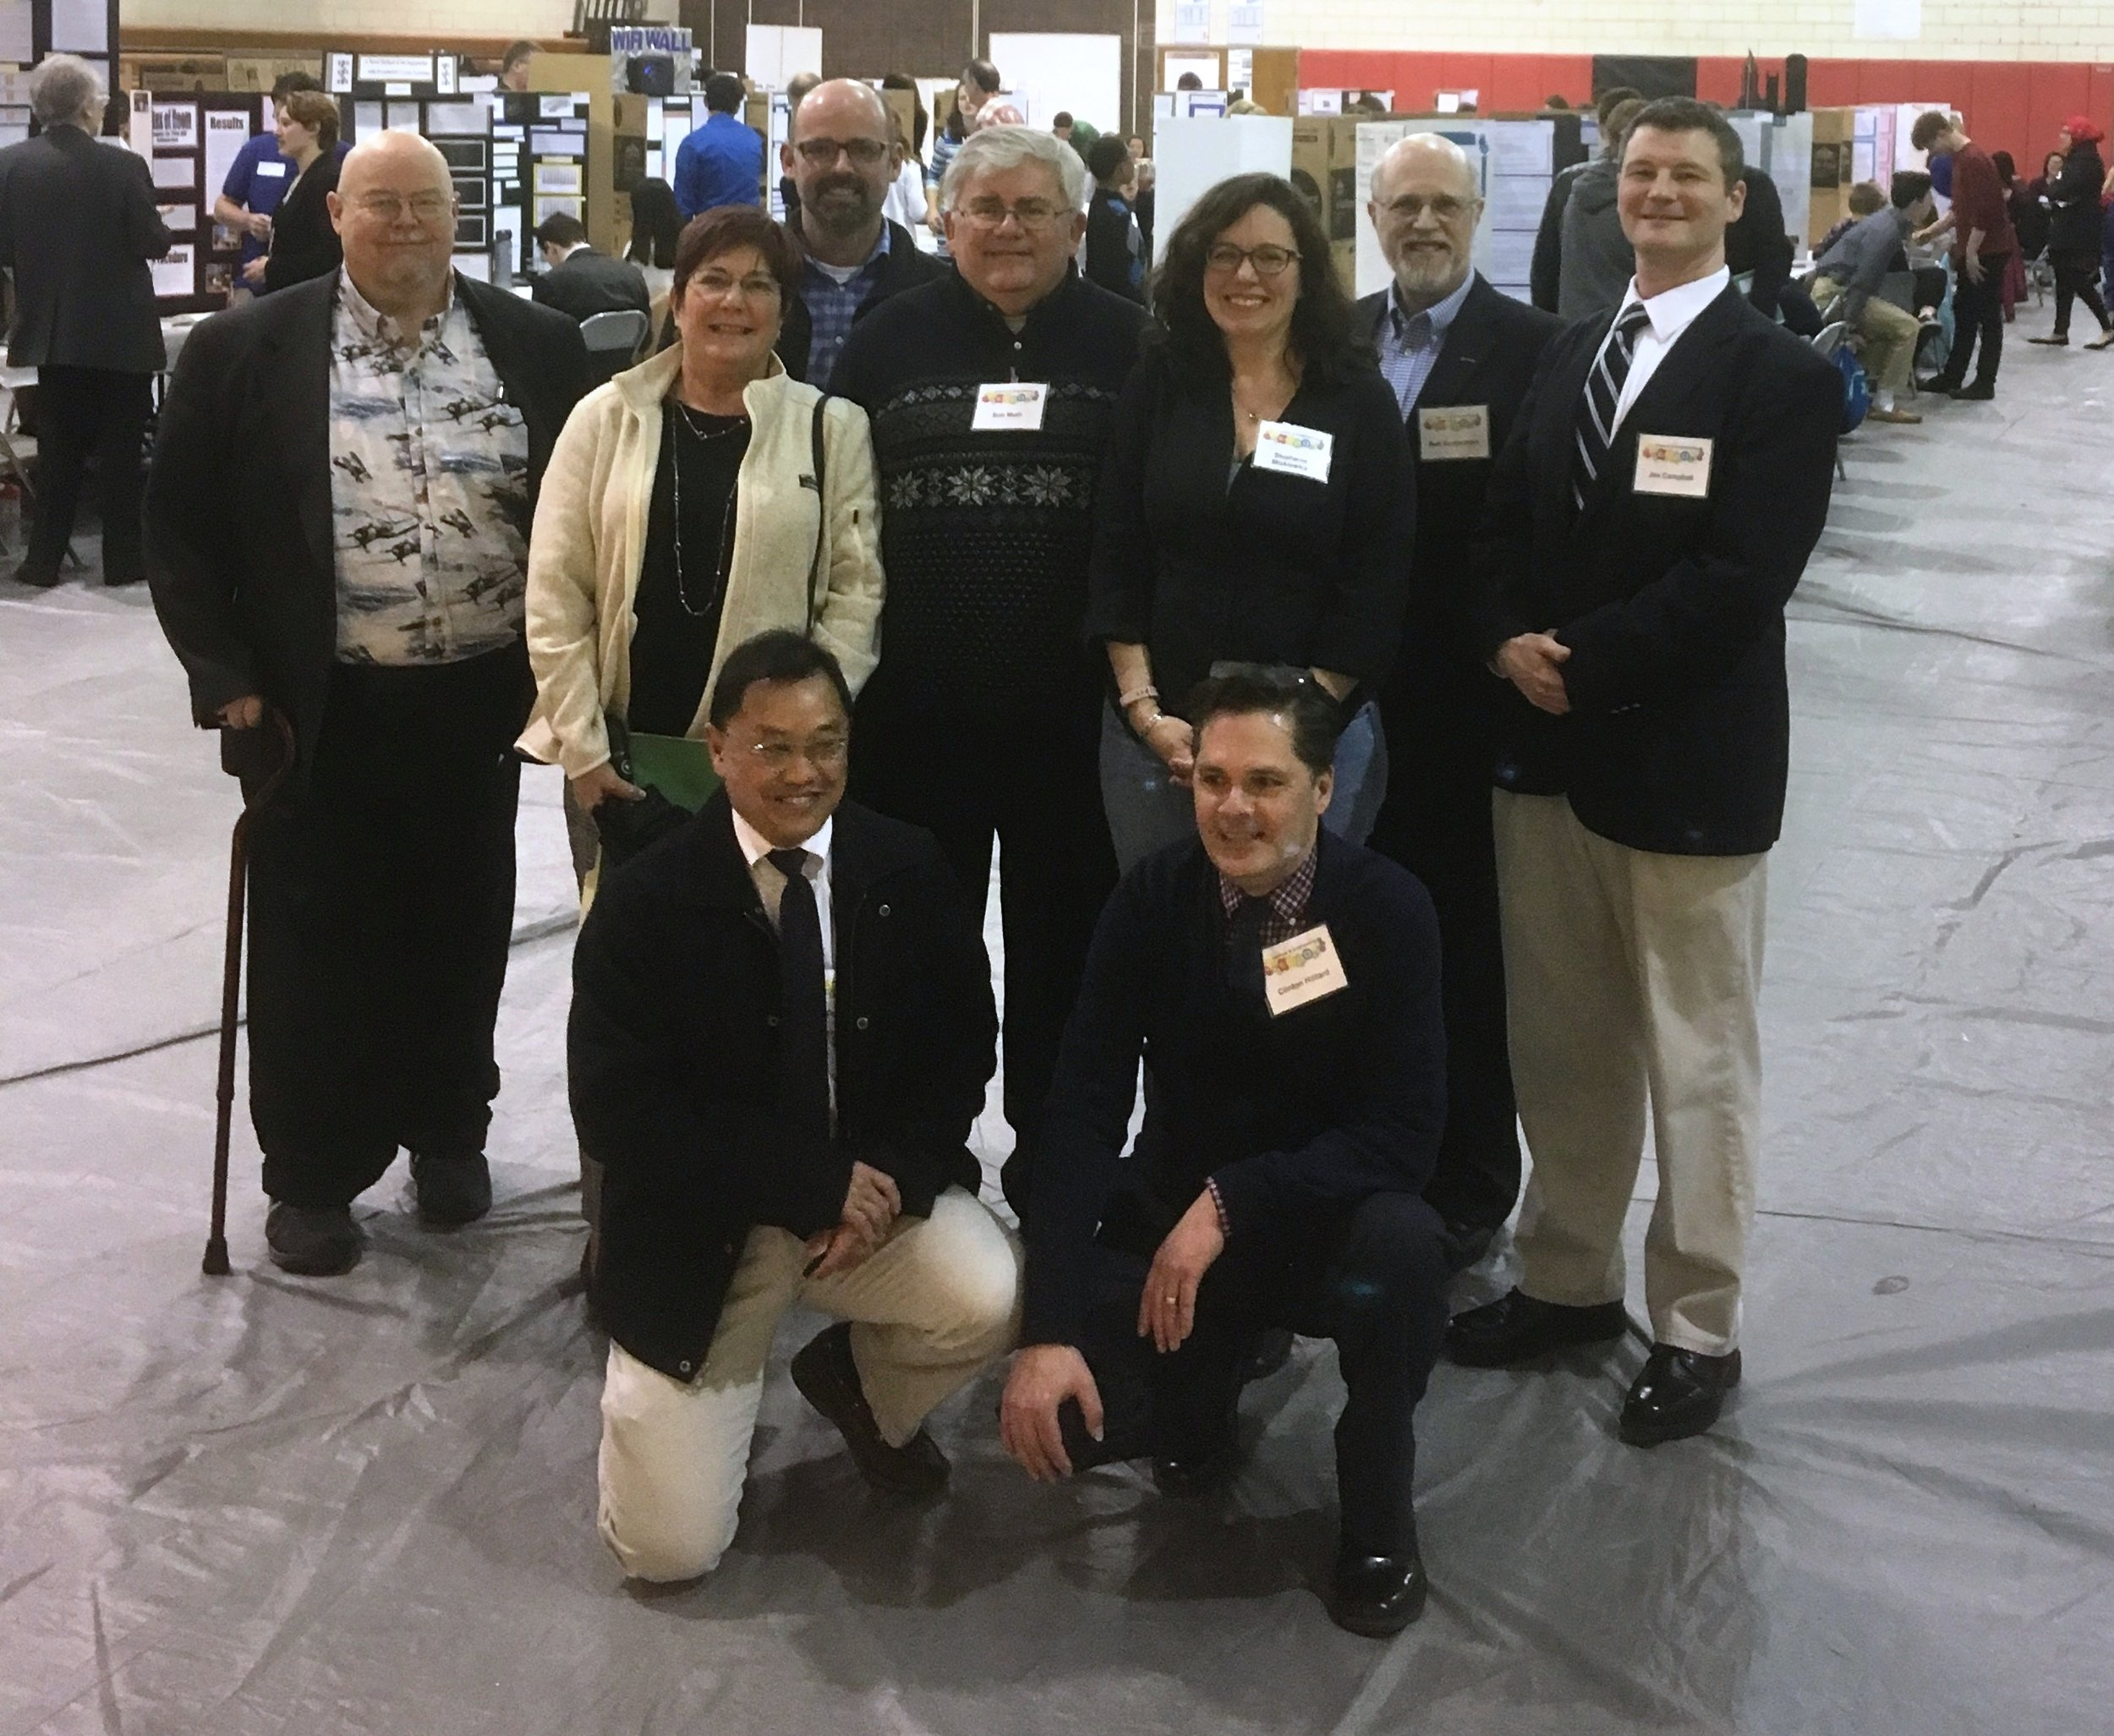 Figure 2 2019 Anne Arundel Expo Judging Team: Back row - Thom Platt, Christie Best, Peter Hoffensetz, Bob Muth, Stephanie Miskiewicz, Bob Koppelman, and Jim Campbell. Front row - Danny Yue and Clinton Hilliard